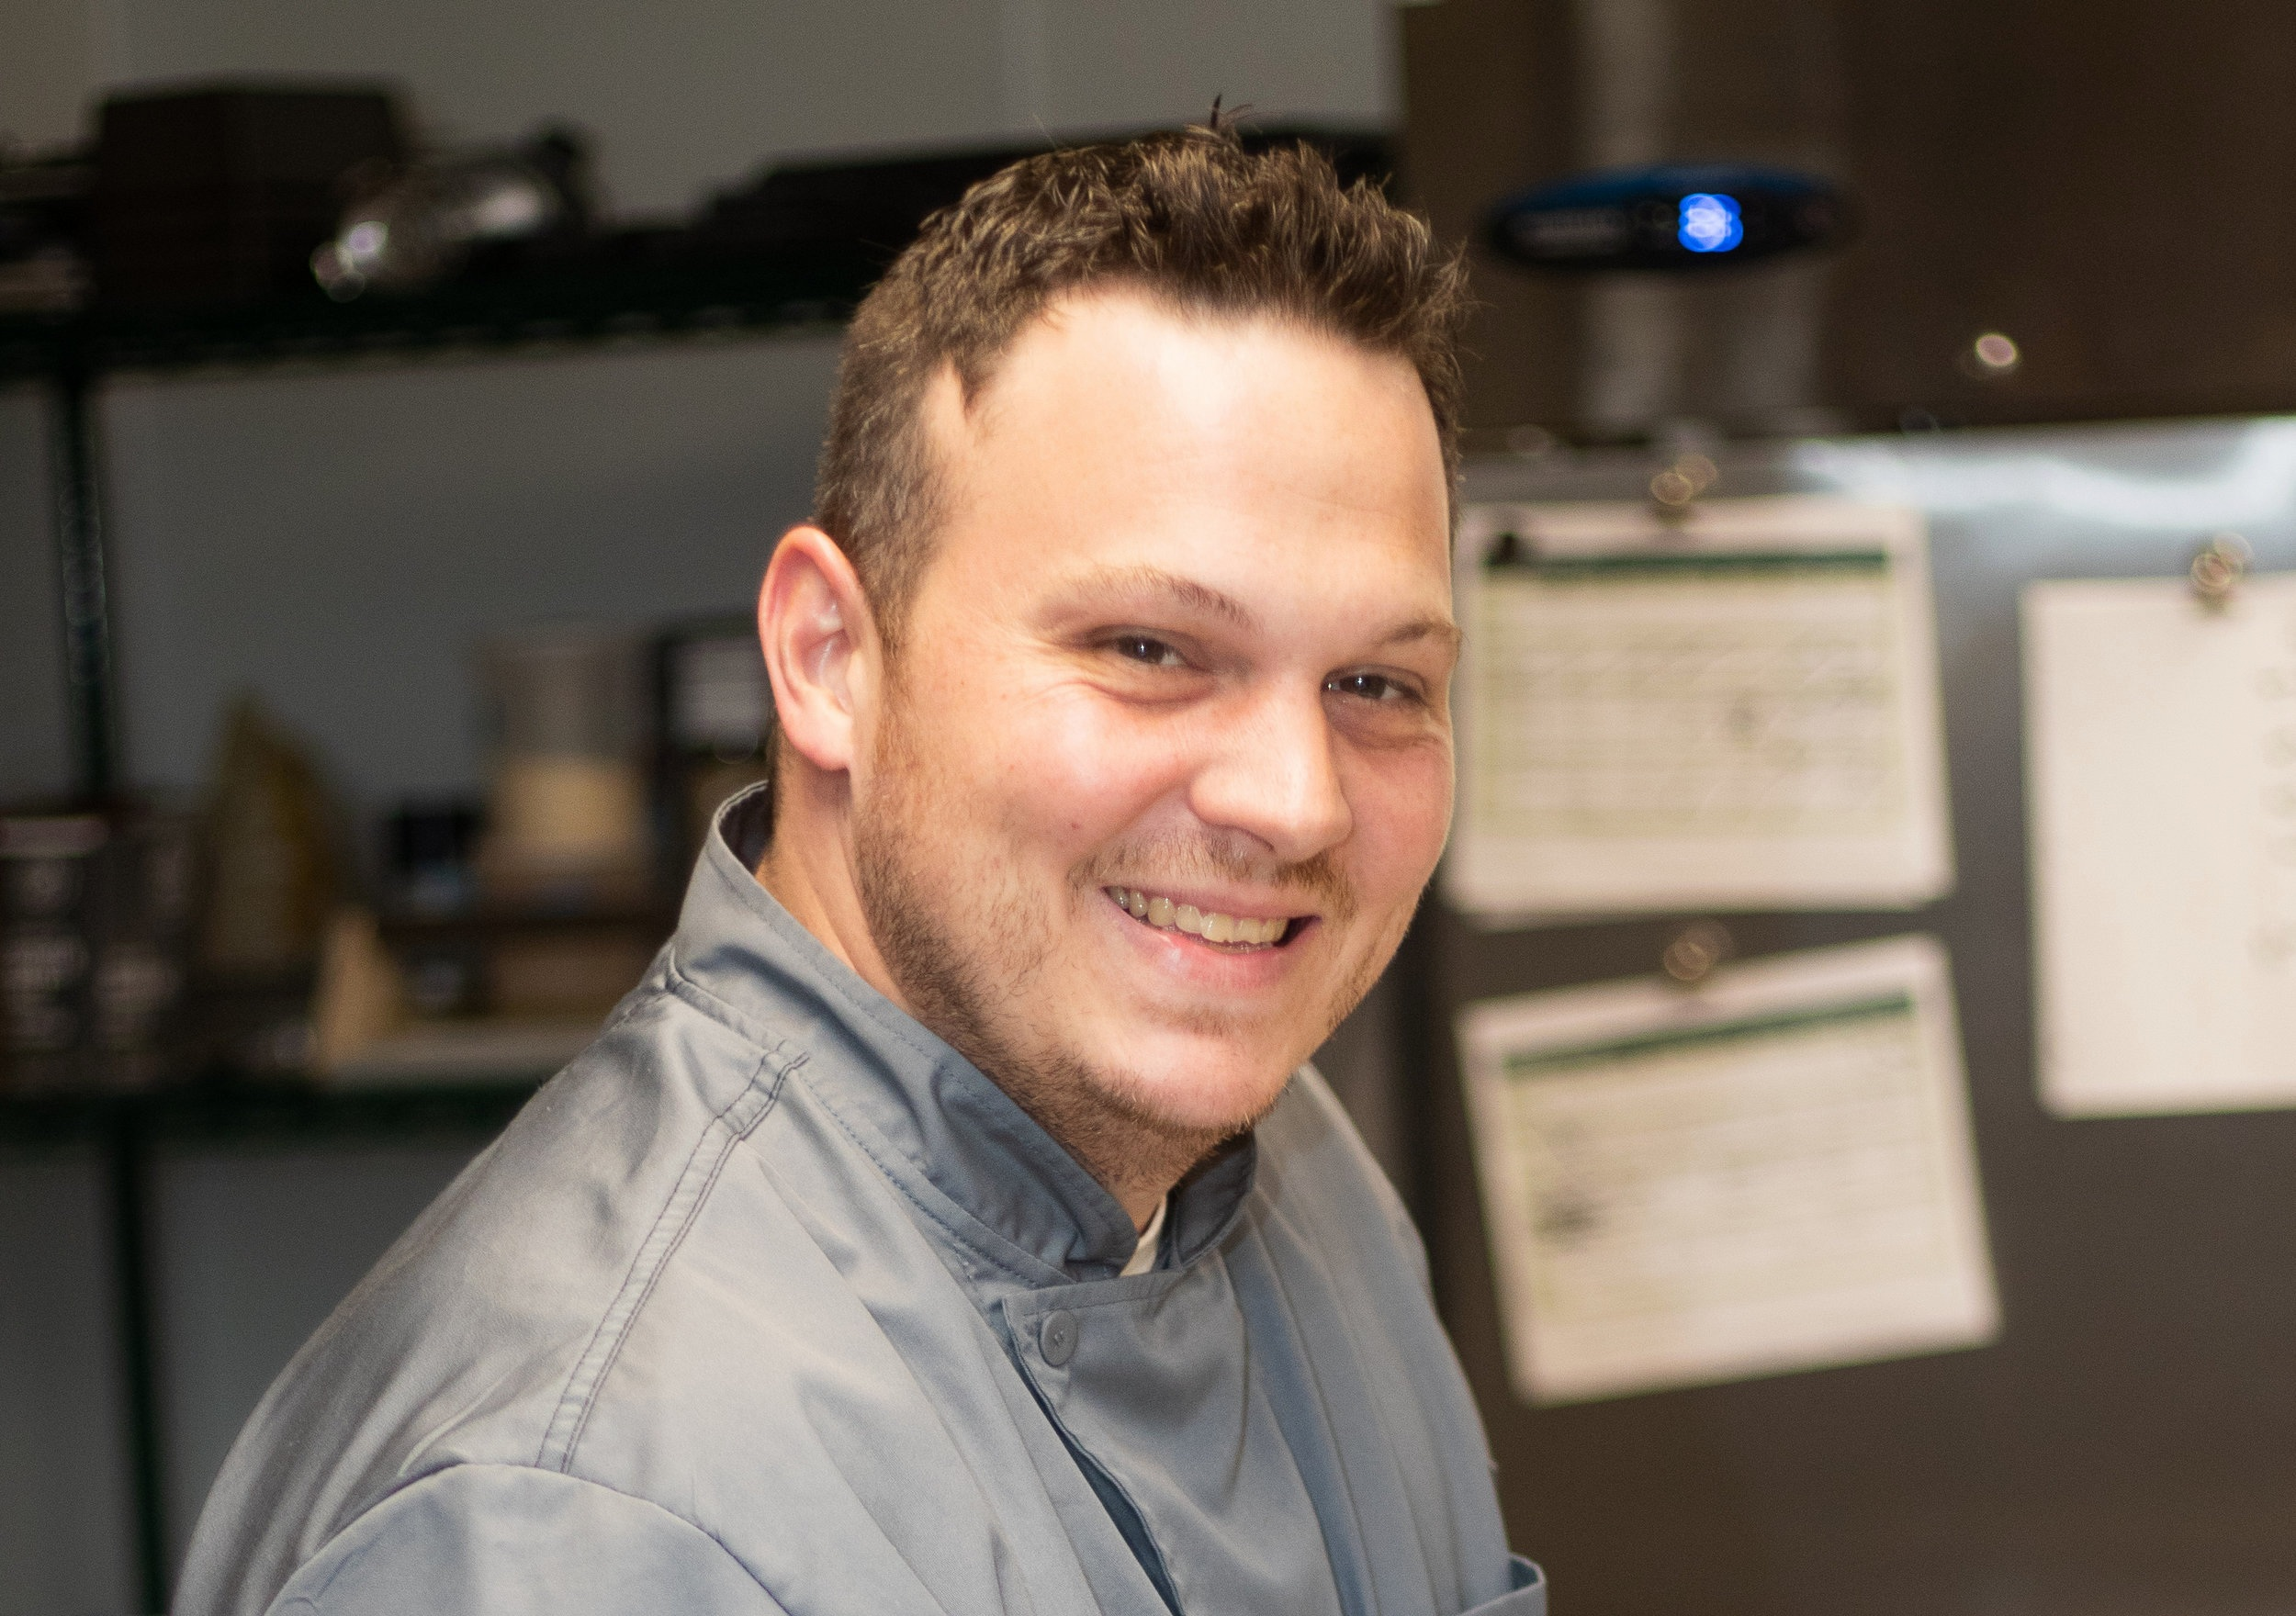 Meet Chef CHARLES - Our highly experienced Culinary Director is passionate about top quality, seasonal ingredients. He believes splendid cuisine starts from scratch — from his rustic Bolognese sauce to his savory soup stocks. Read more ↝